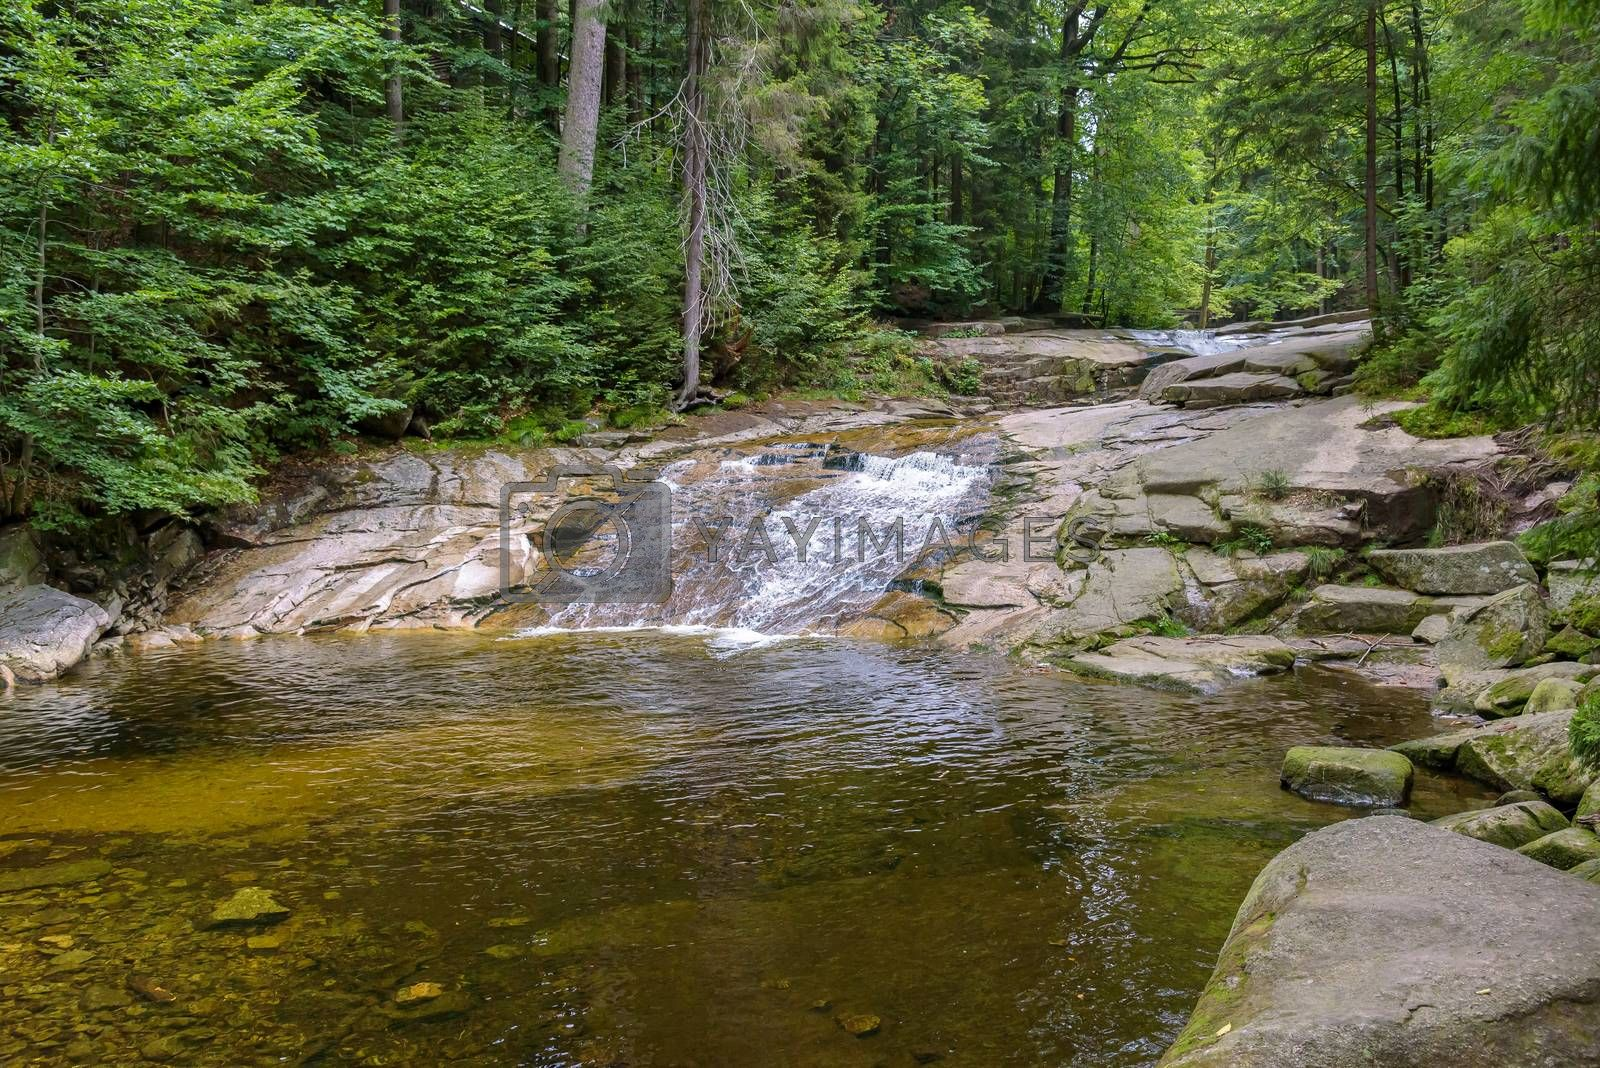 Royalty free image of Cascades on the Mumlava river in Czech Republic by mkos83